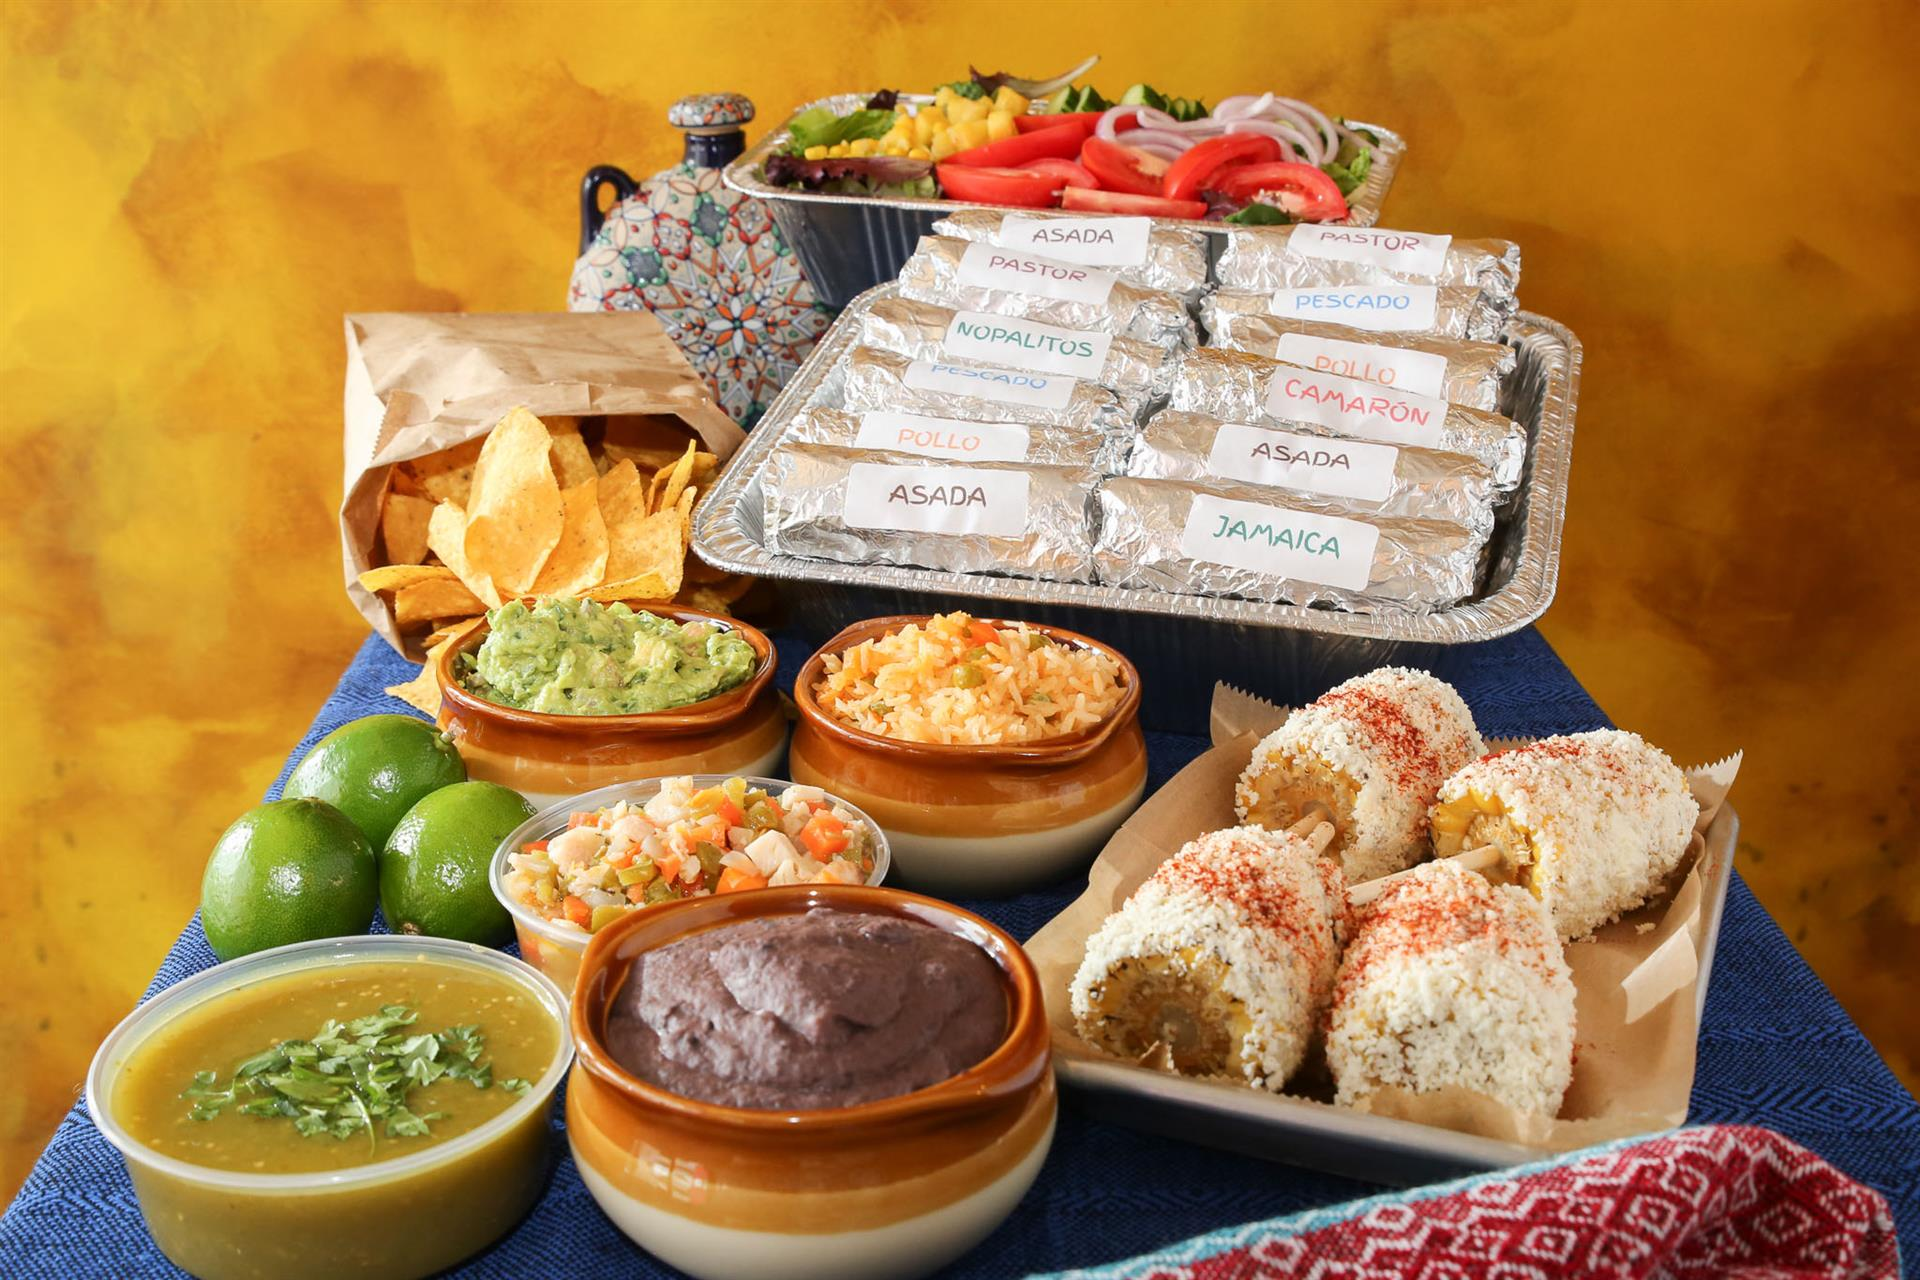 an assortment of tacos, chips, corn, salsa, beans and limes on a table